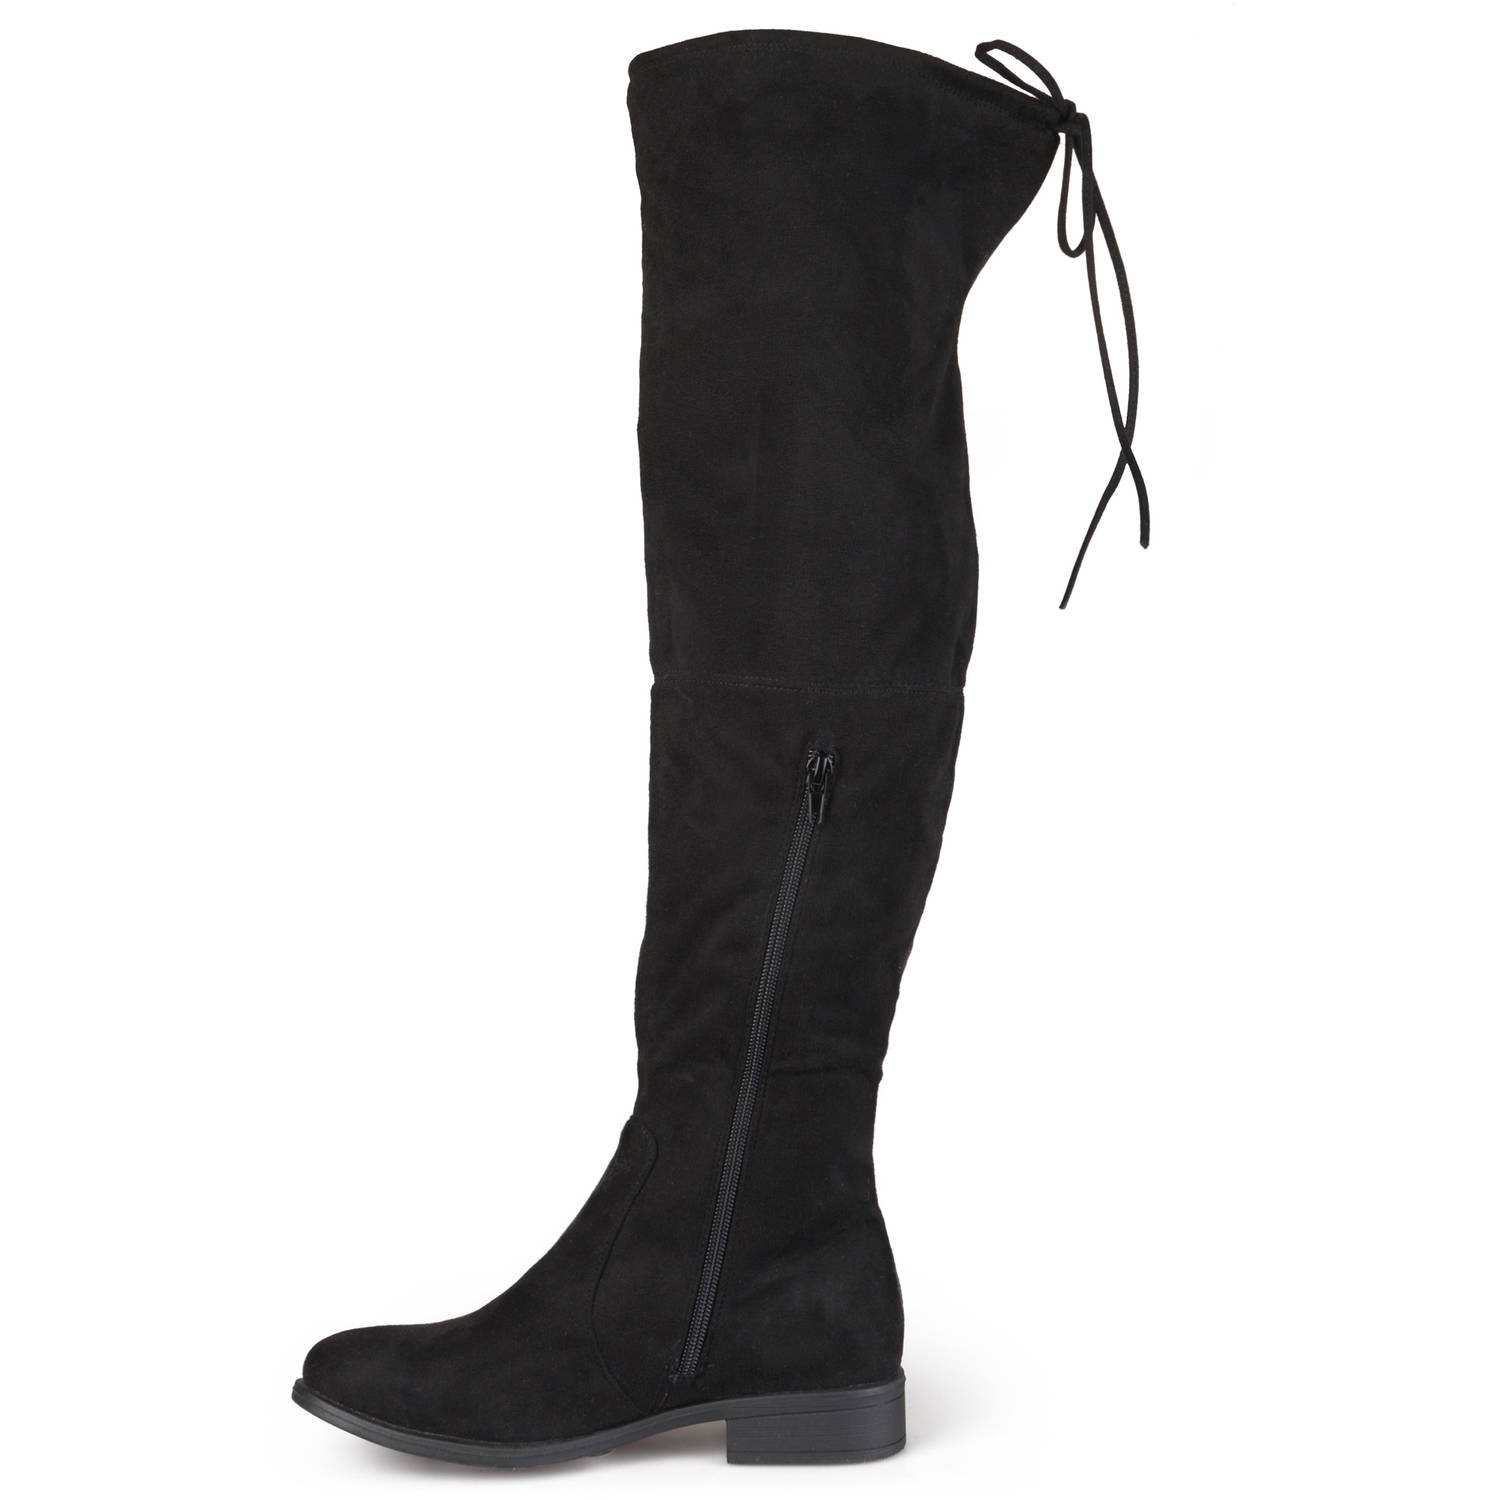 Over The Knee Boots Wide Calf 462ypv2P